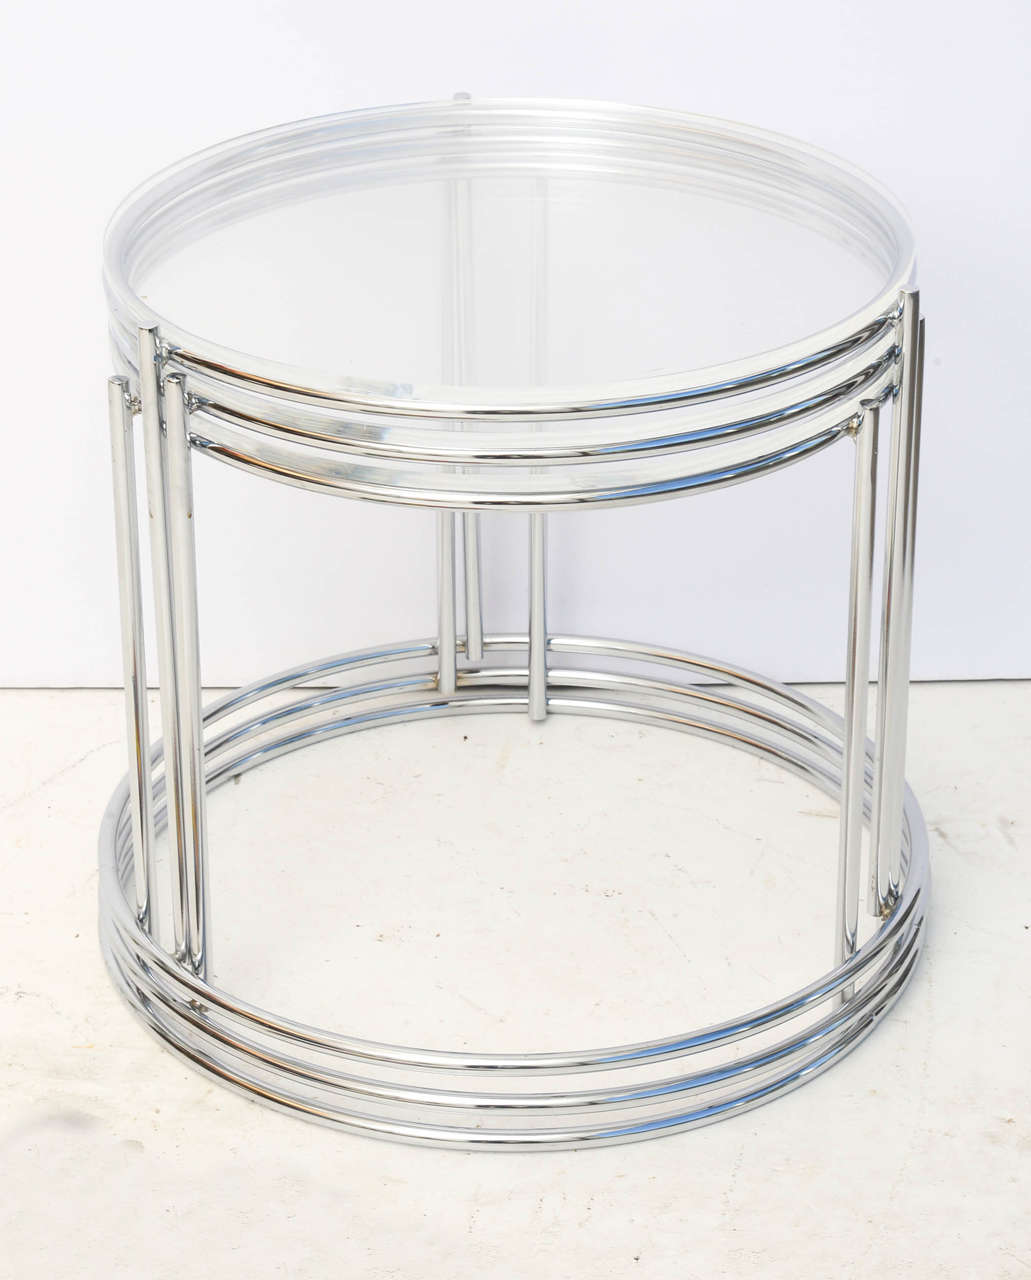 Set of three saporiti style nesting tables in polished chrome and modern set of three saporiti style nesting tables in polished chrome and lucite for sale watchthetrailerfo